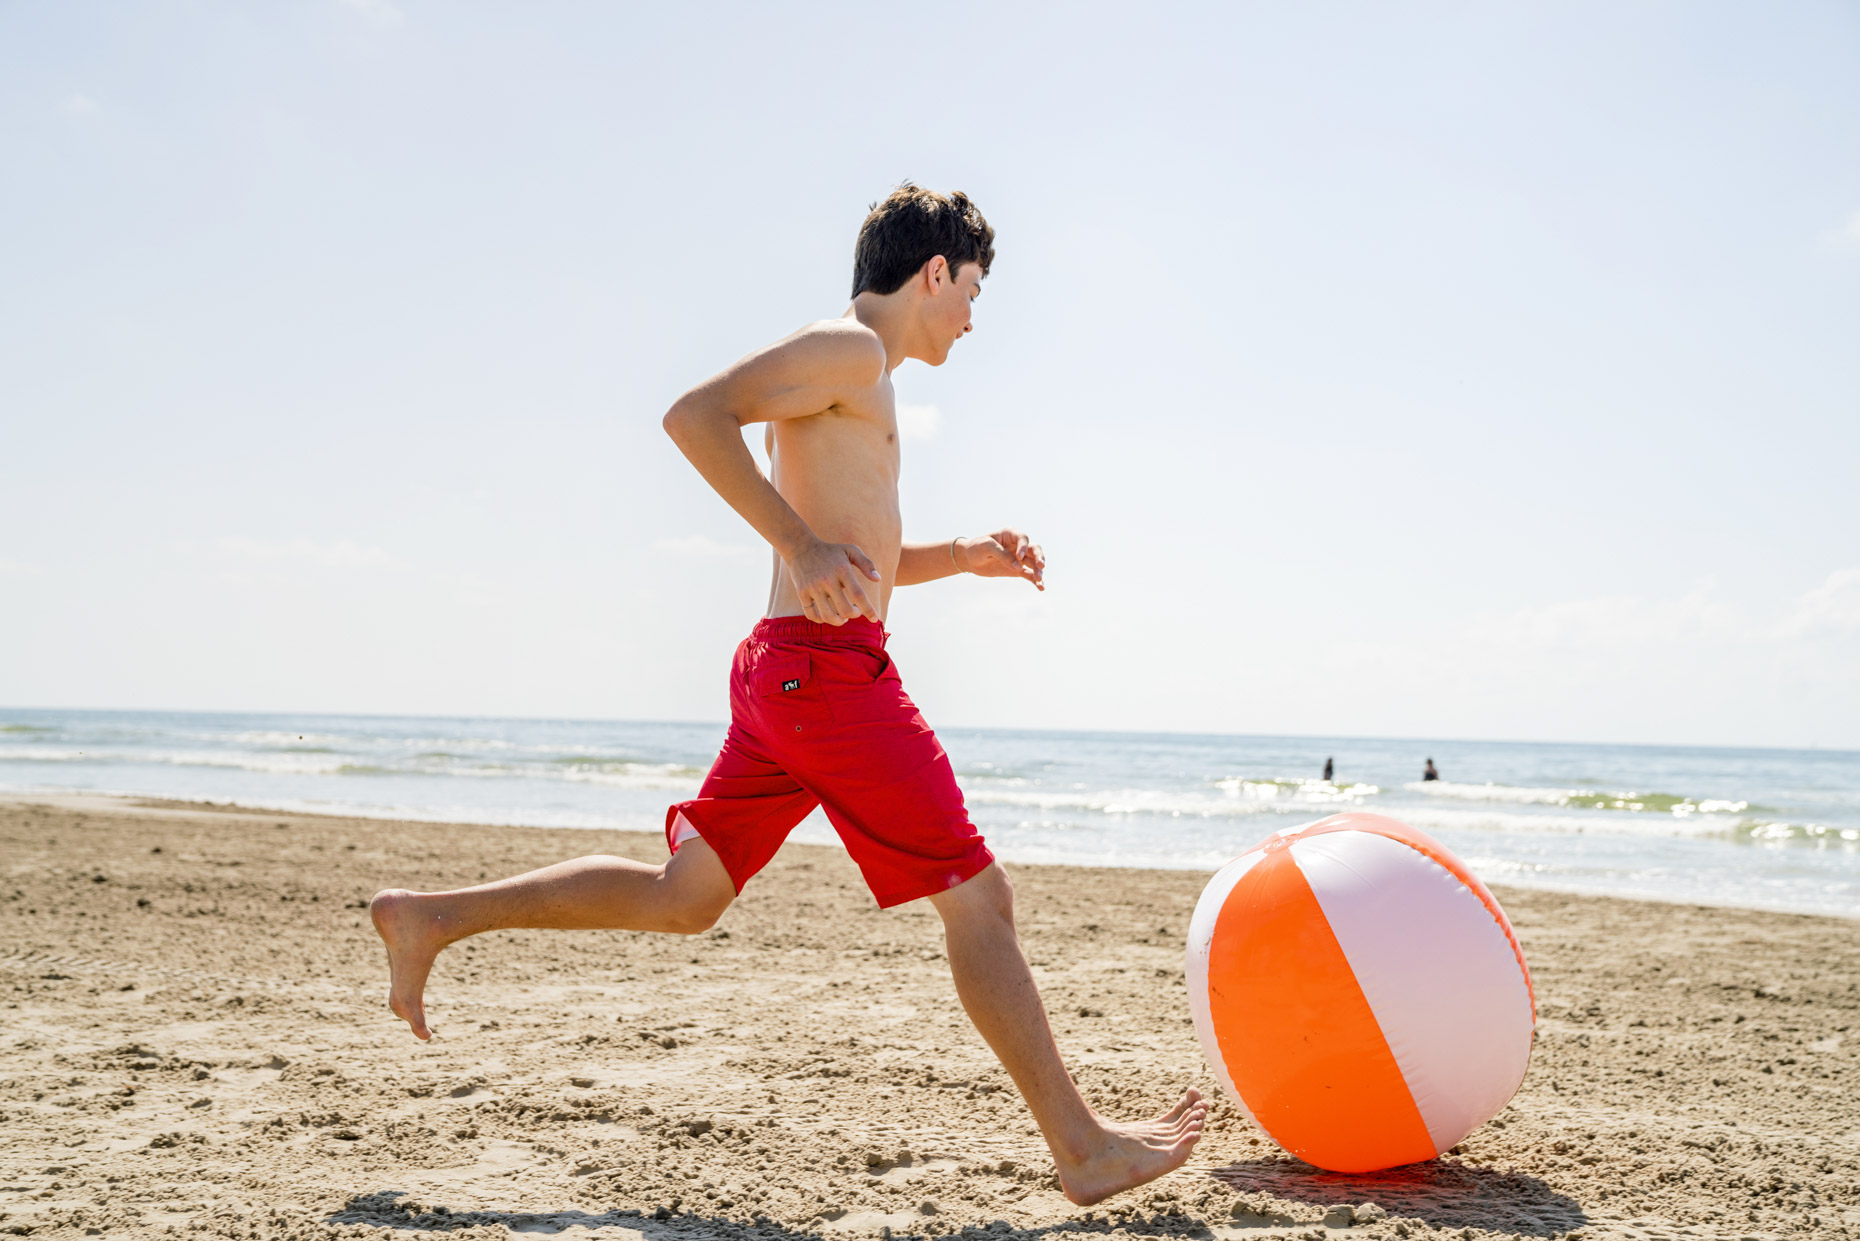 Boy kicking beach ball toward ocean